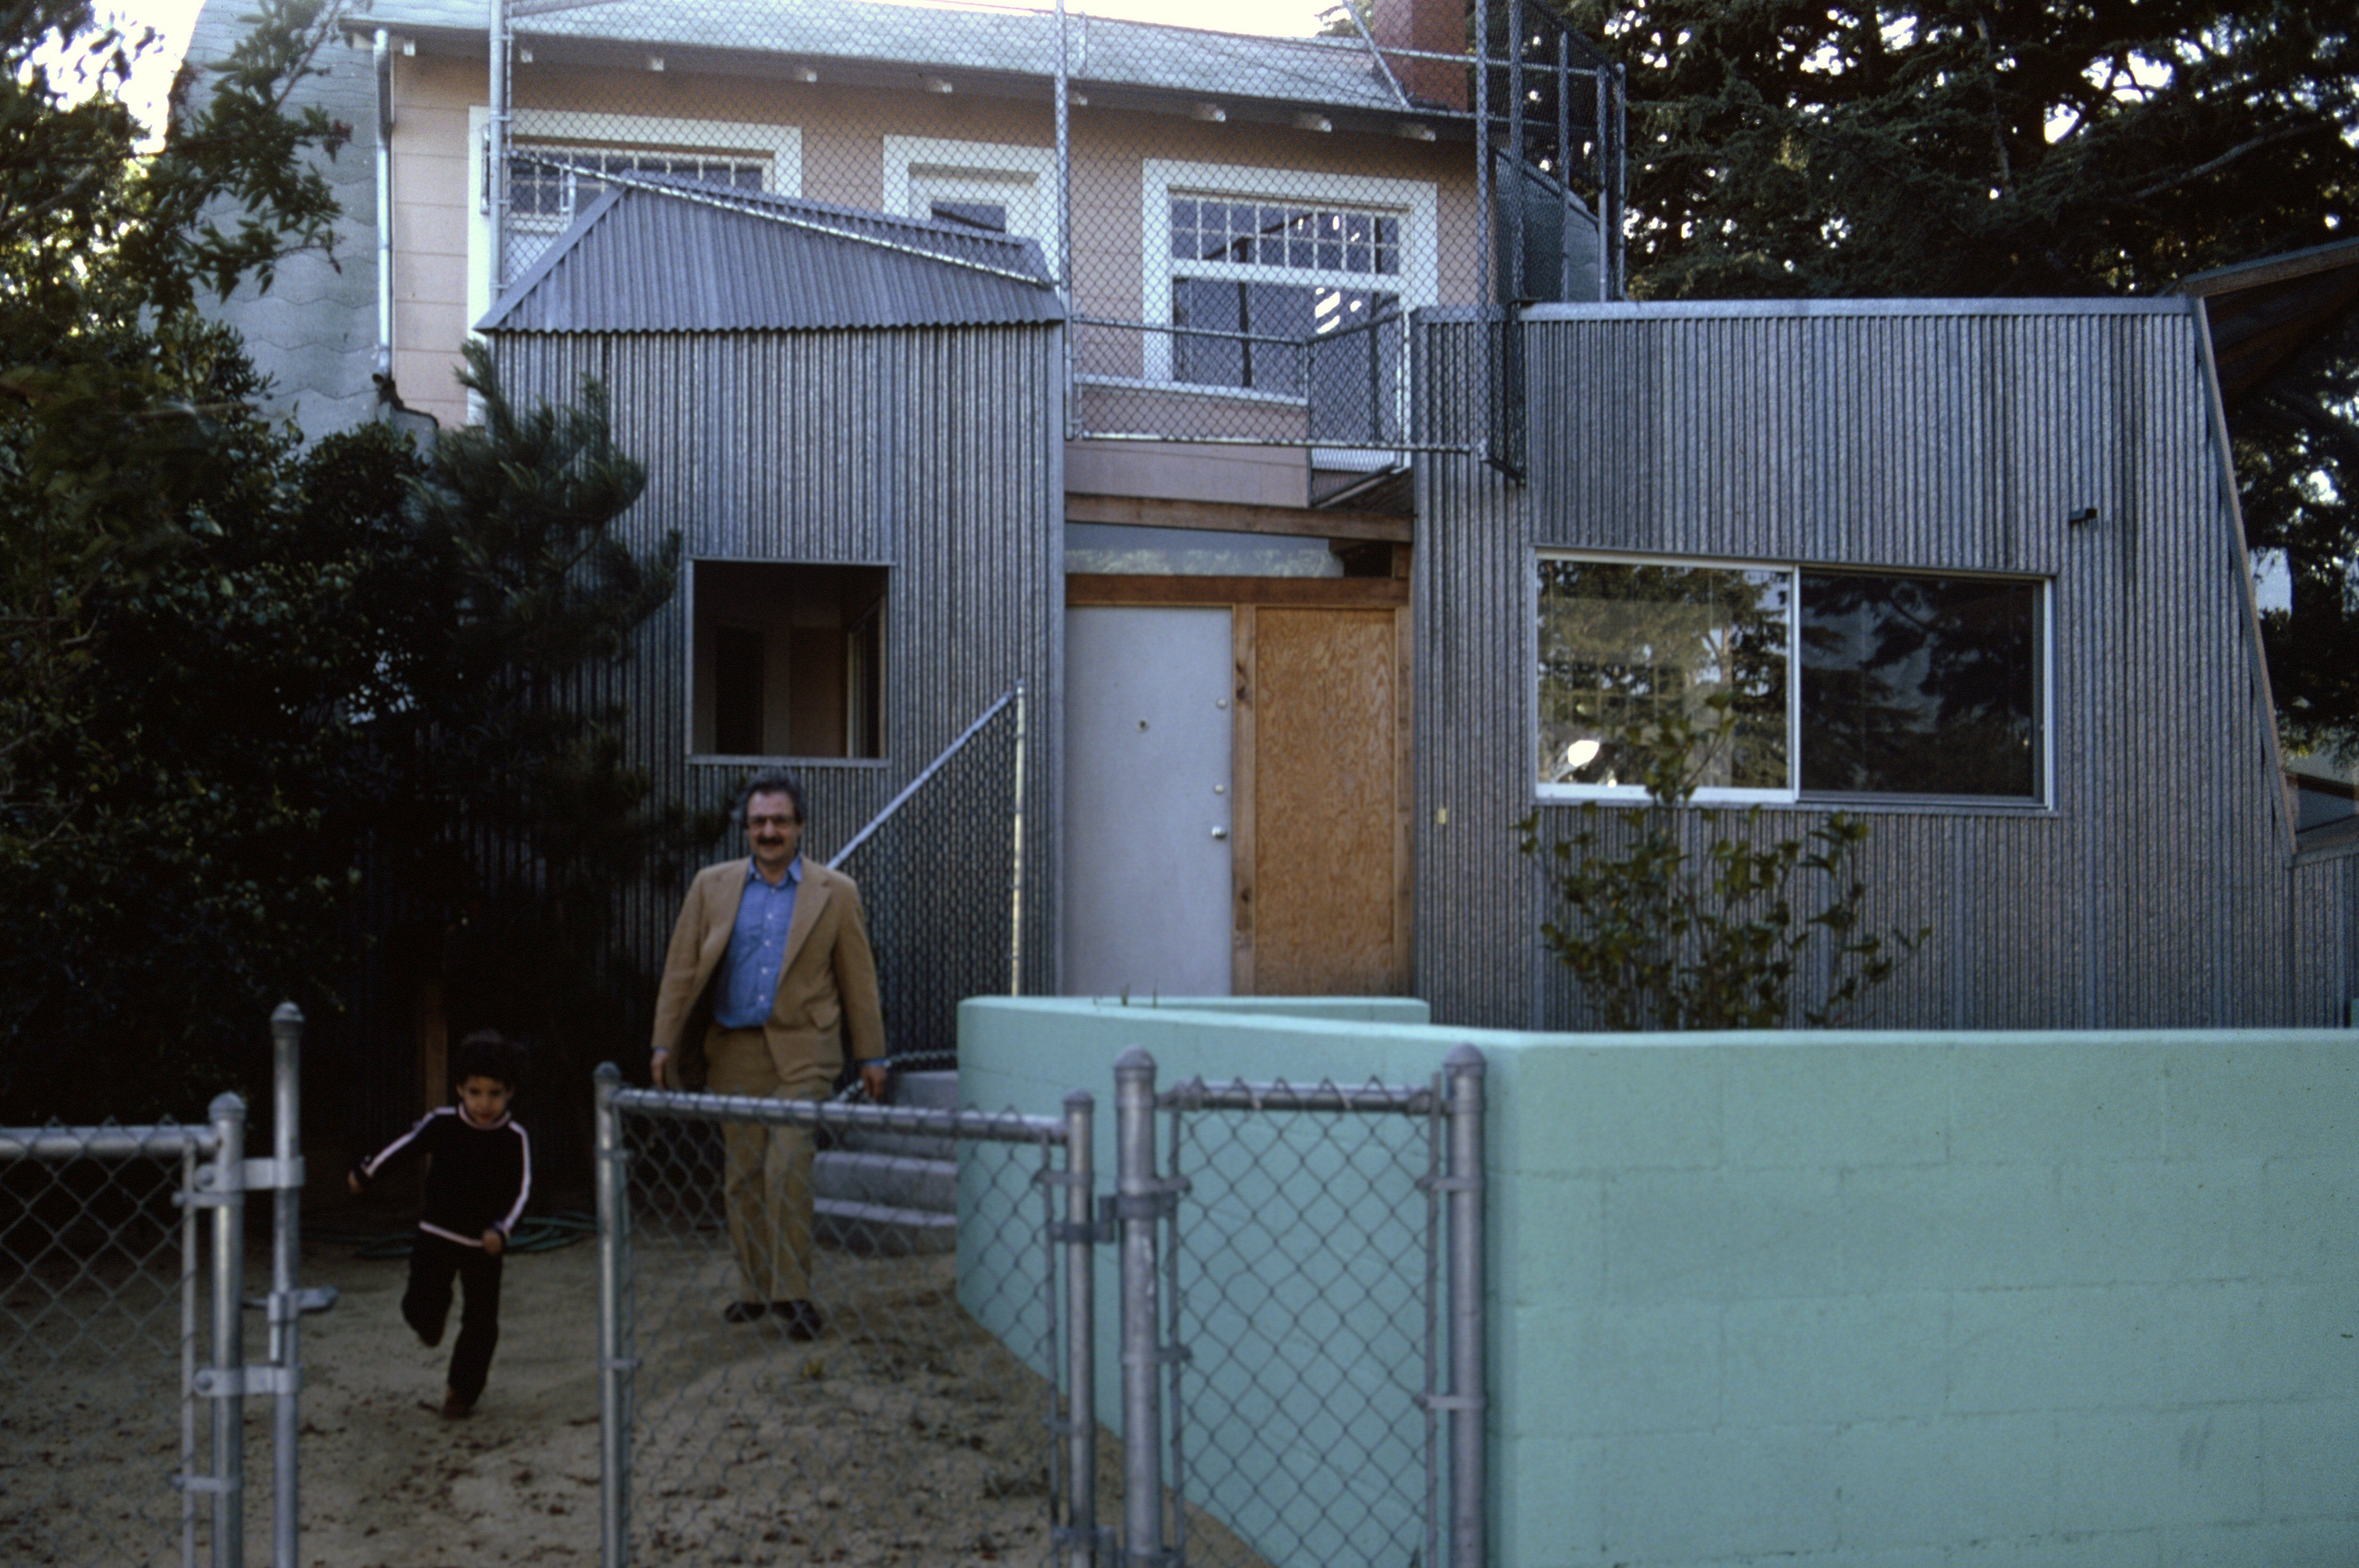 Frank Gehry and His Son, Alejandro, in Front of the Gehry Residence in Santa Monica, c. 1980